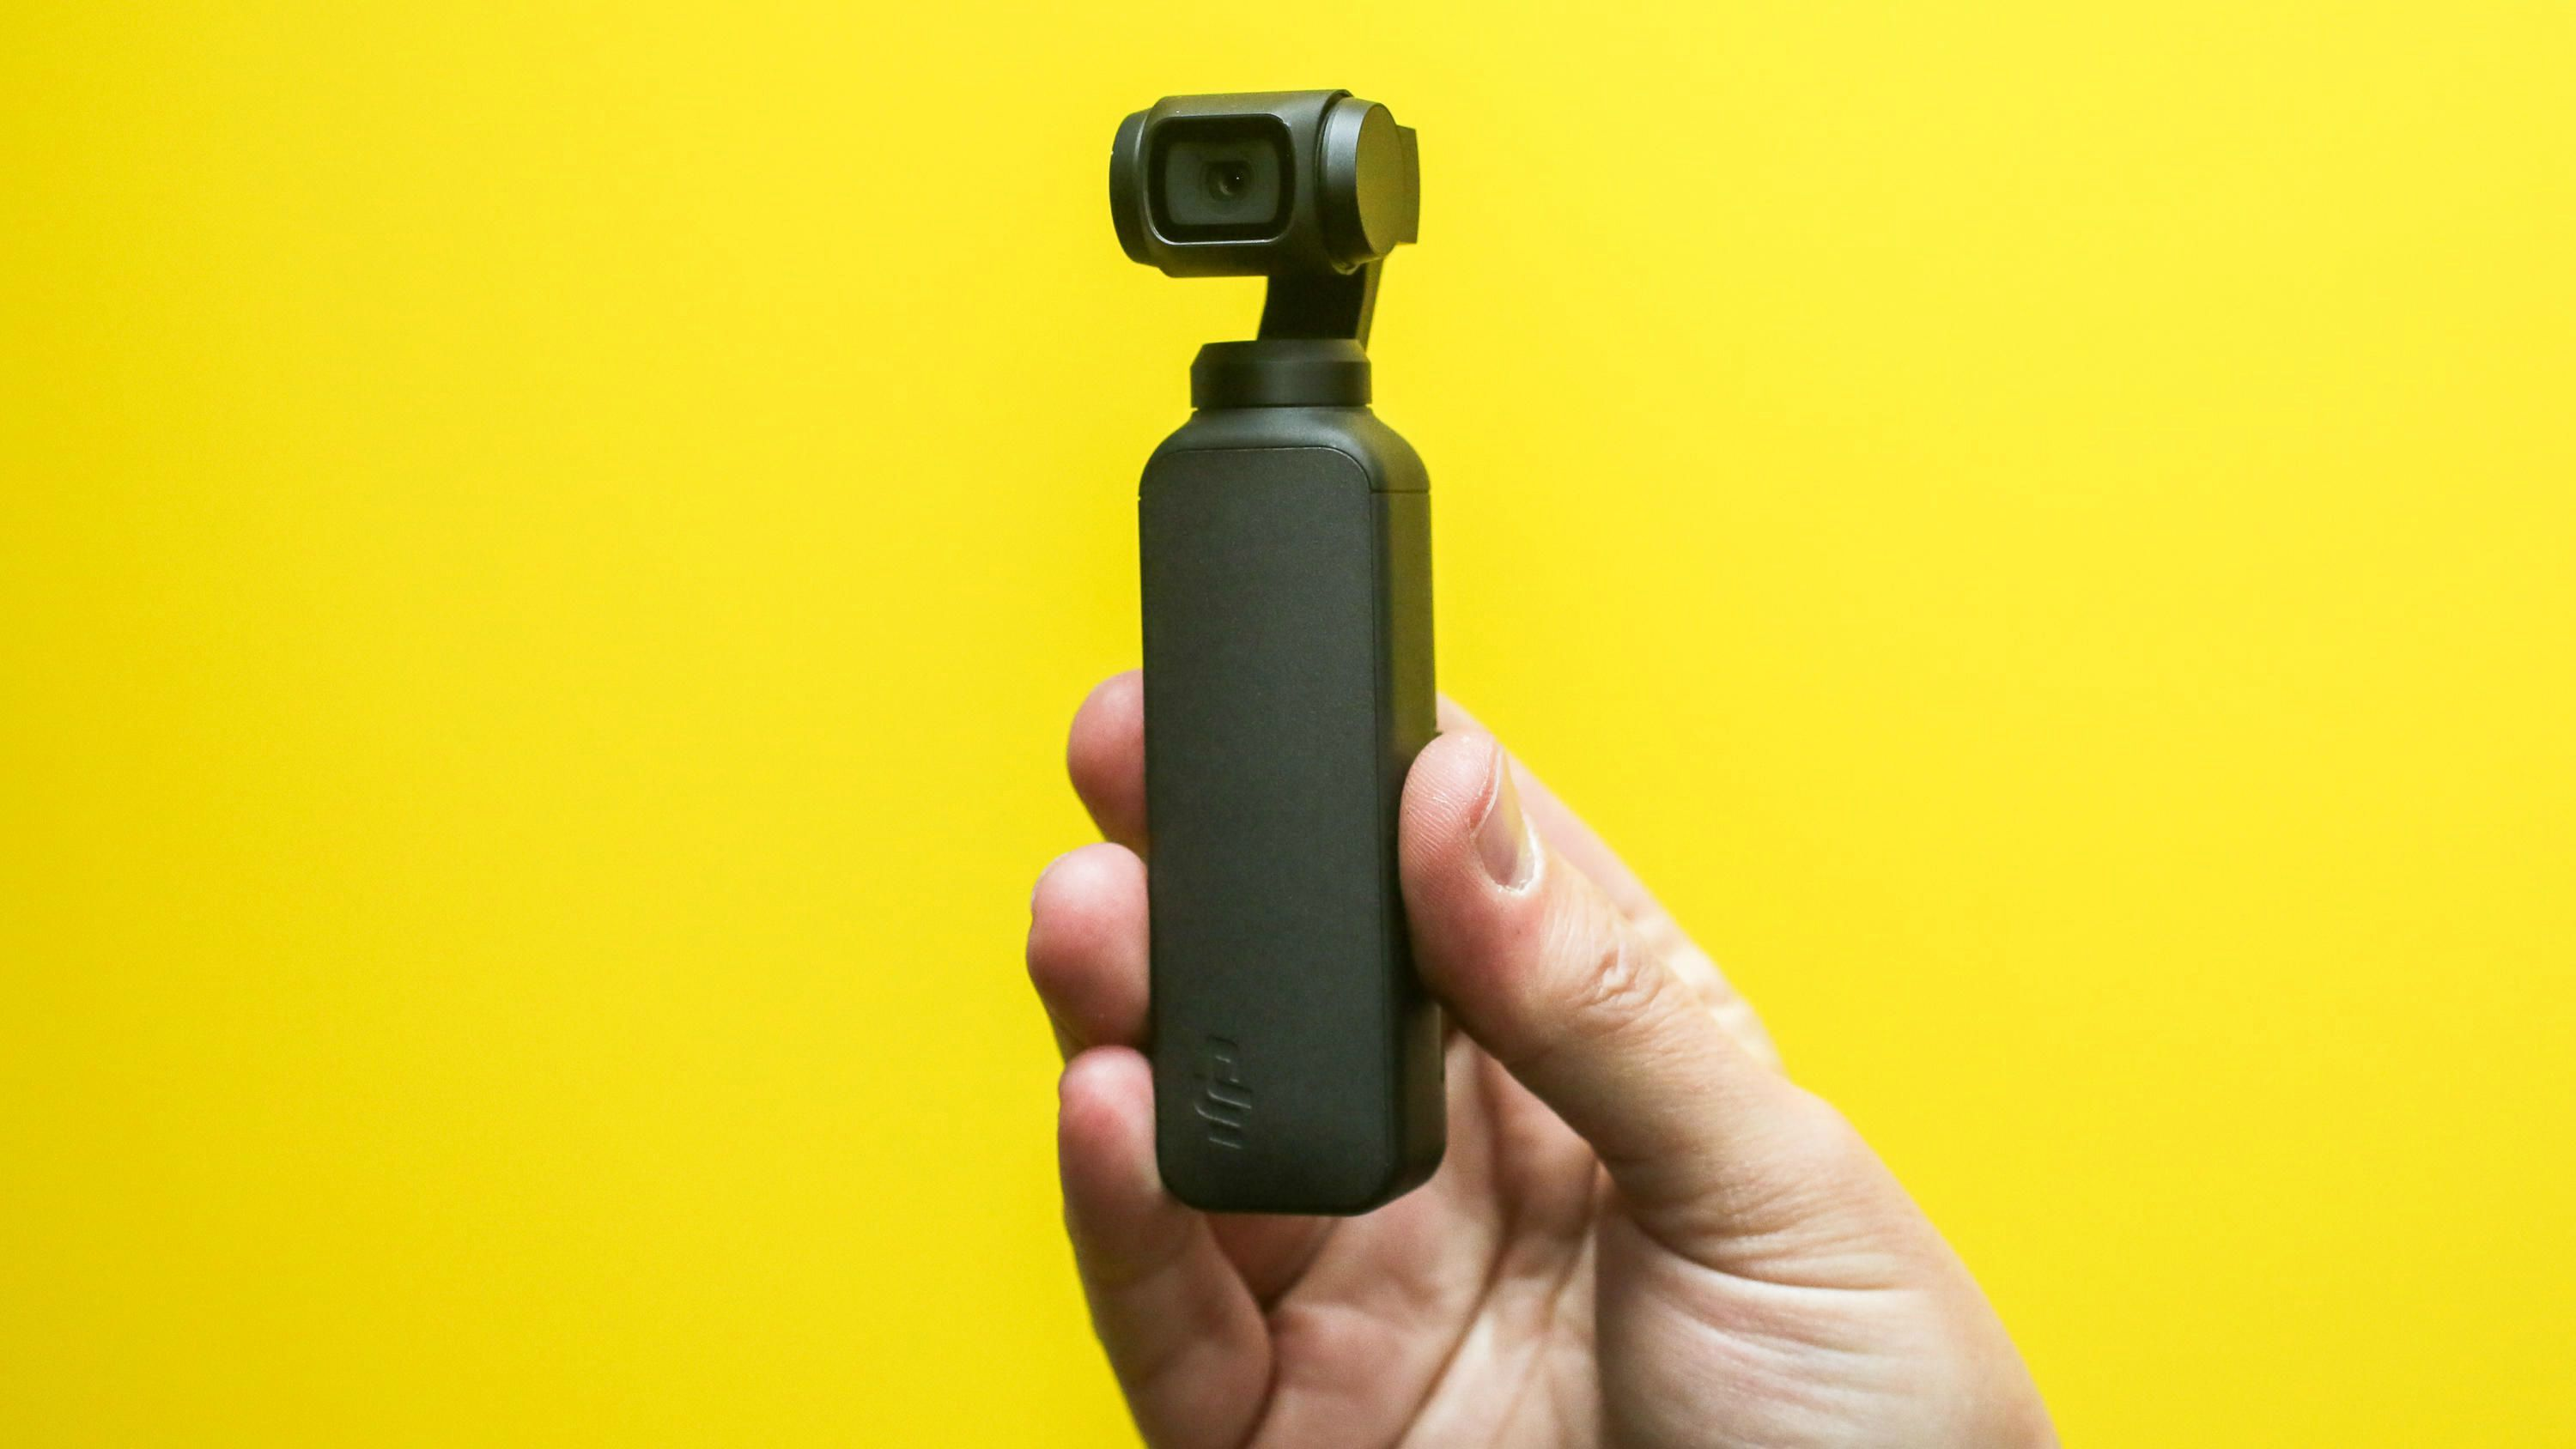 Check Out Our List Of The Hottest Innovative Tech Products